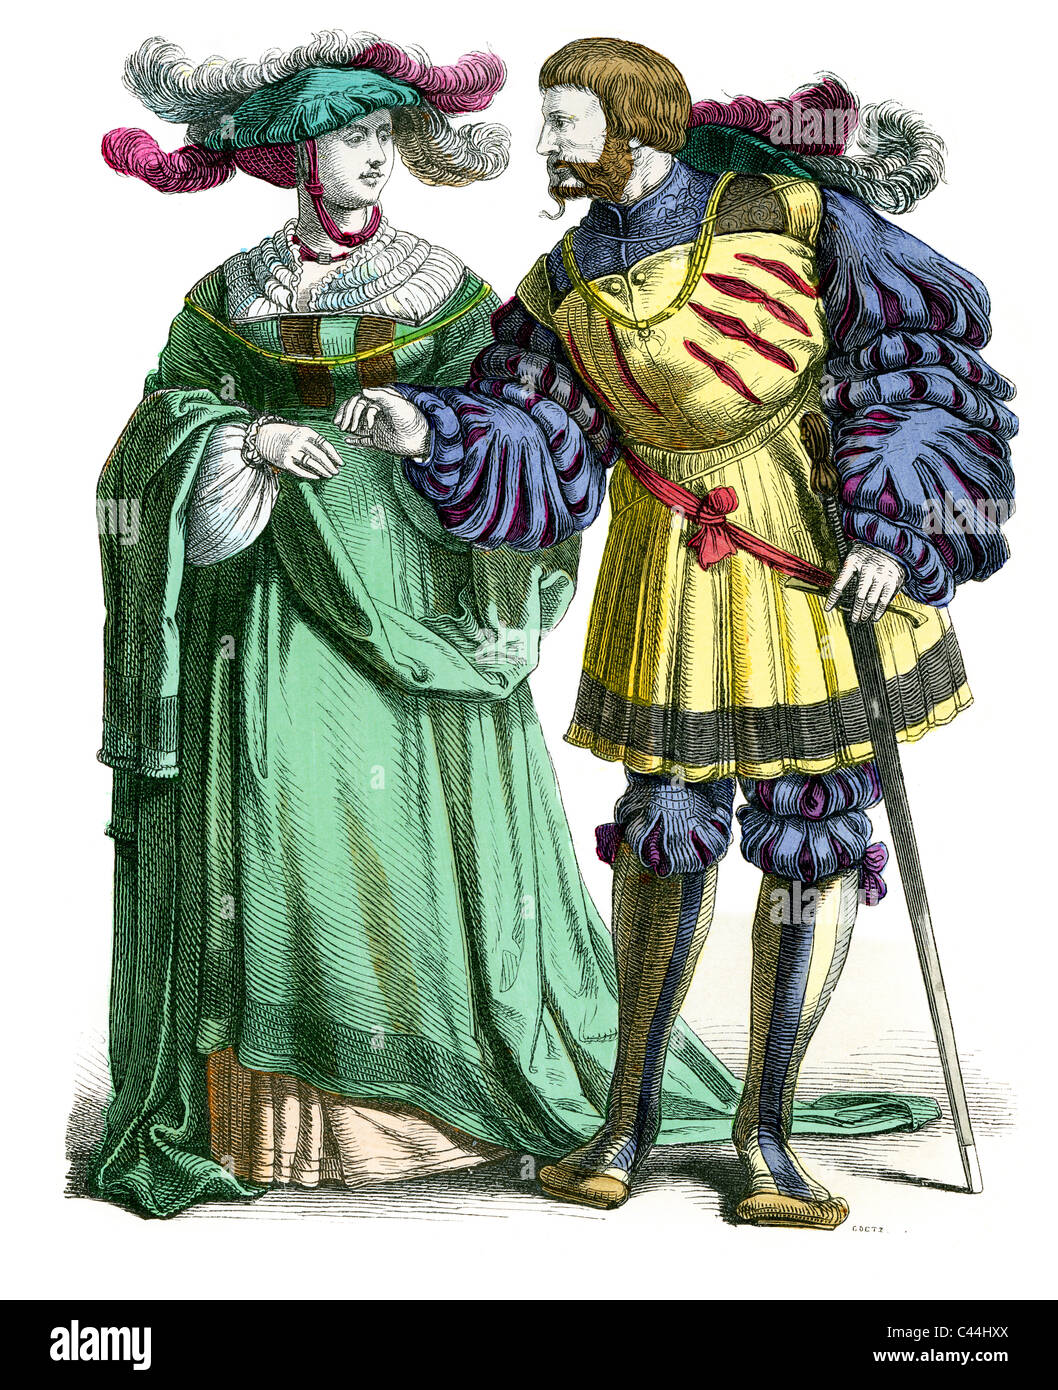 16th Century German Nobleman and Lady in fashionable dress - Stock Image